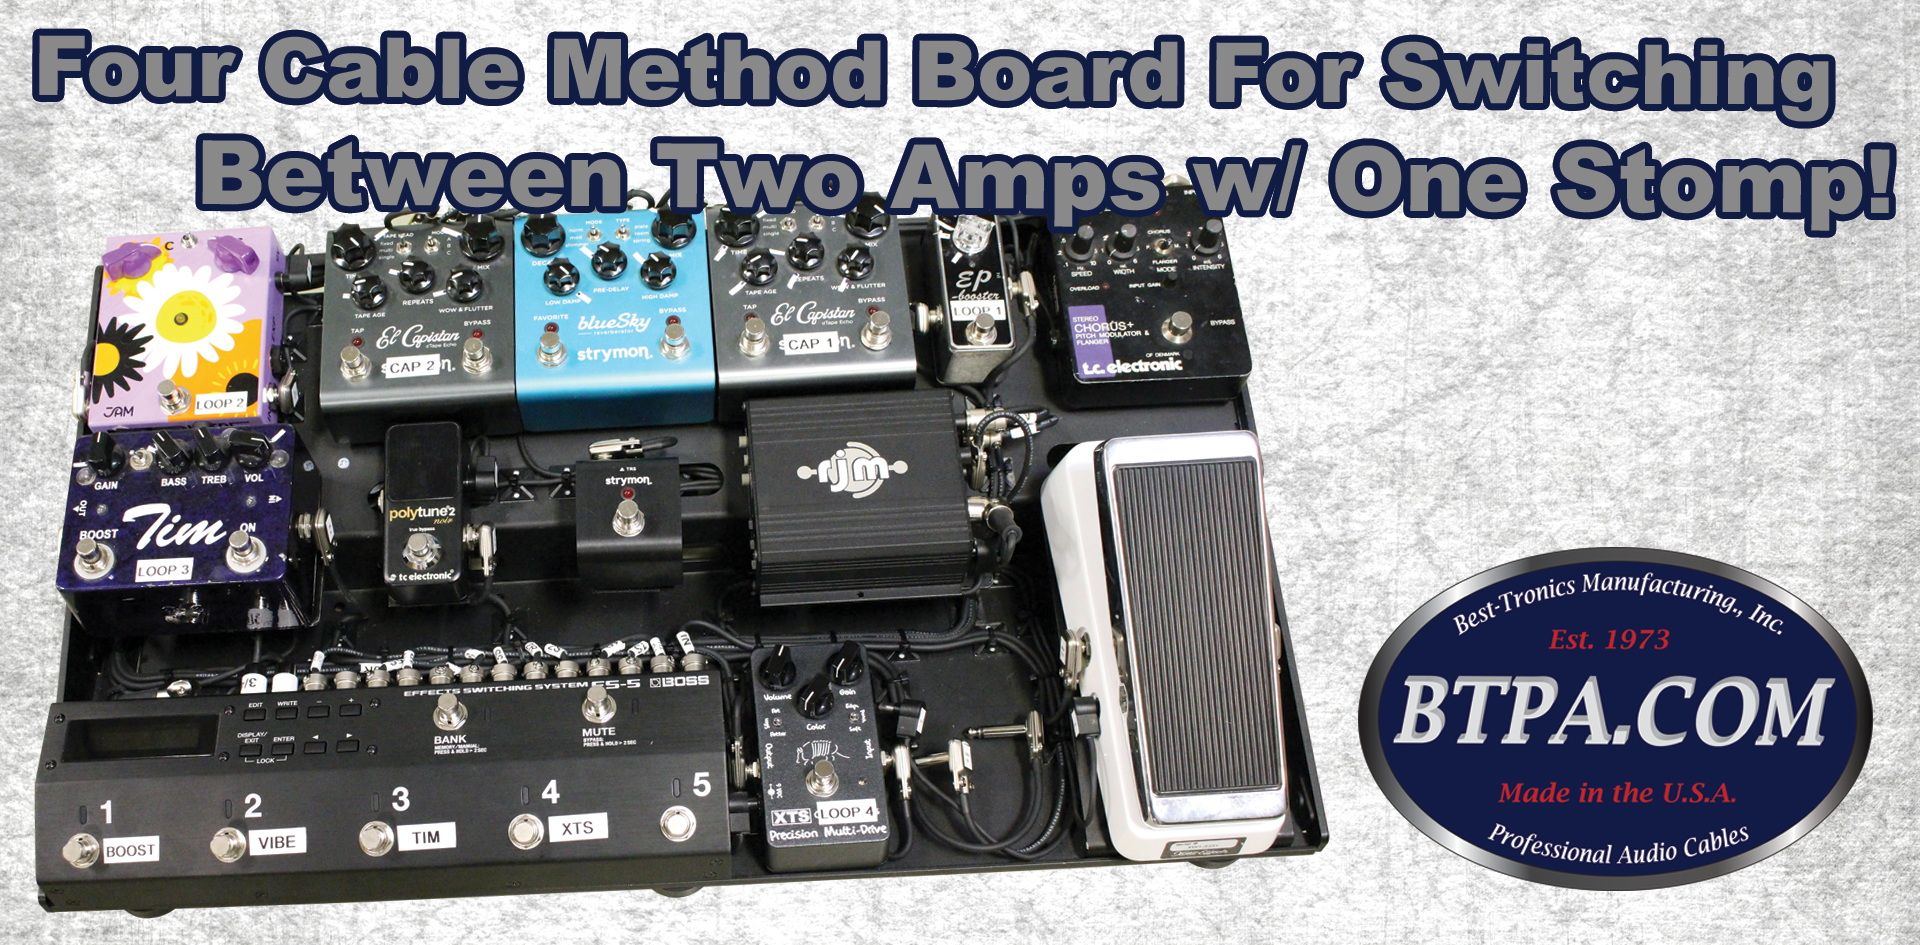 We Built a Four Cable Method Pedalboard to Switch Between Two Amps!